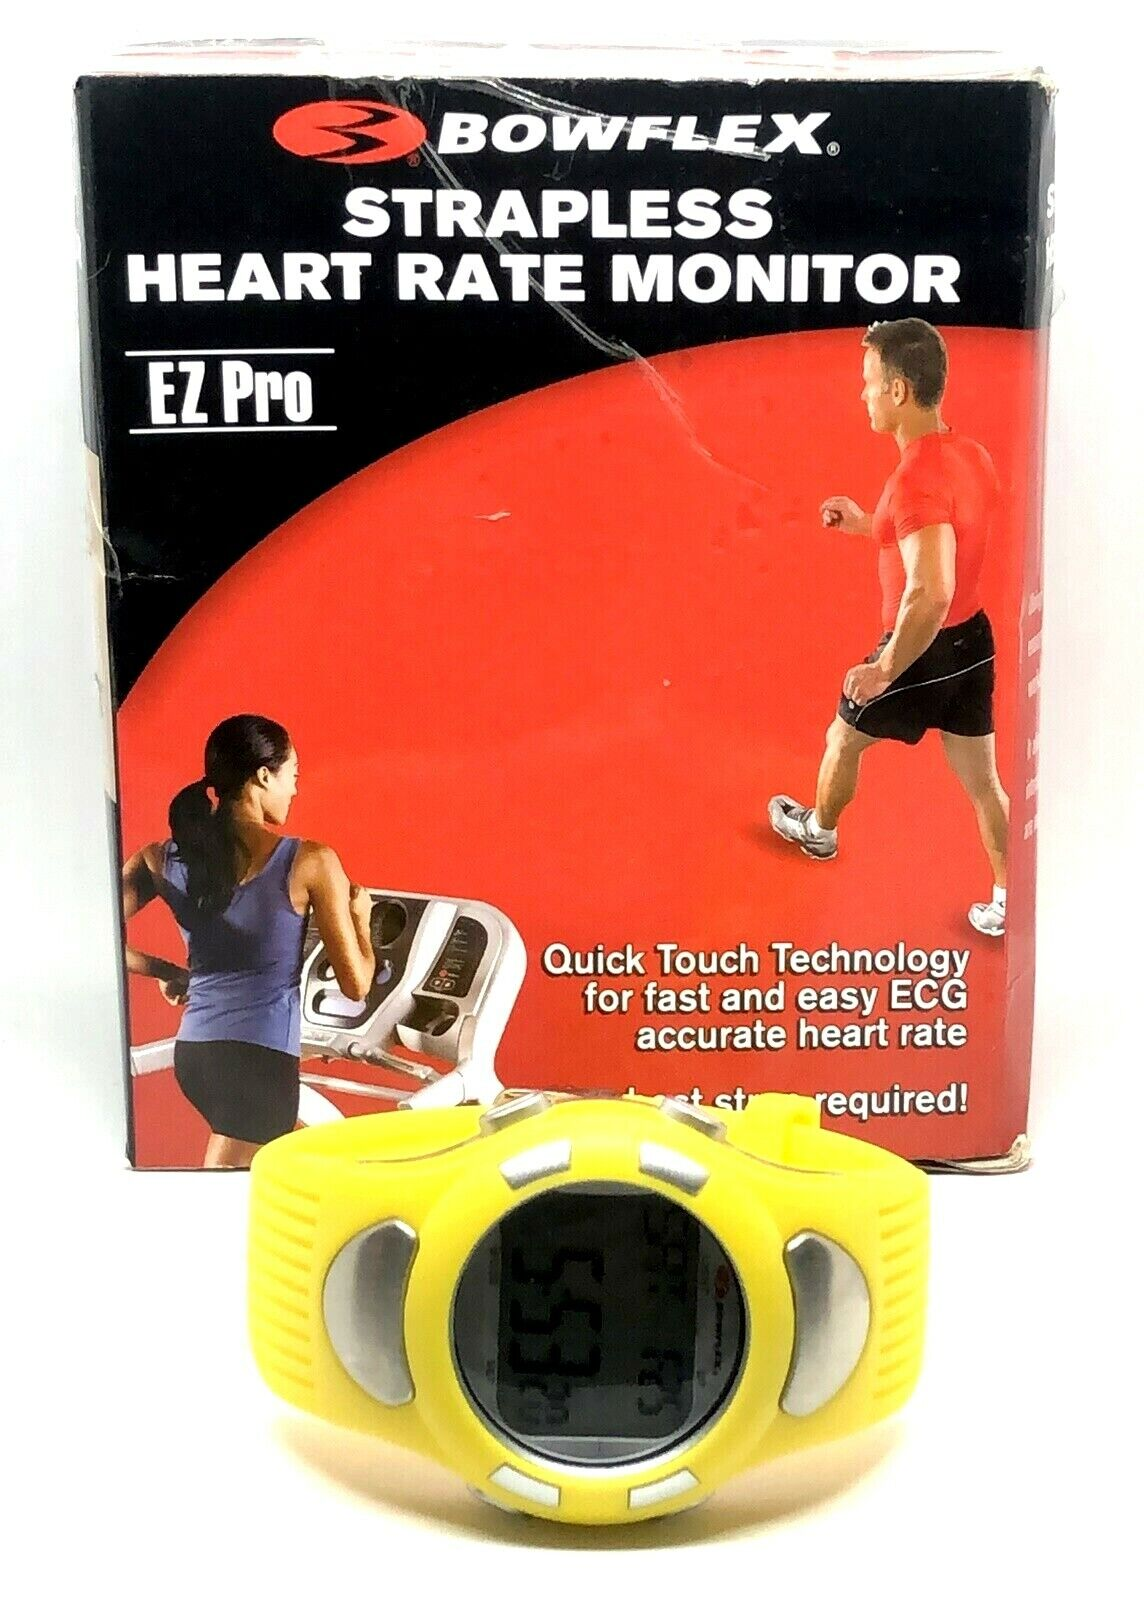 Bowflex EZ Pro Strapless Heart Rate Monitor